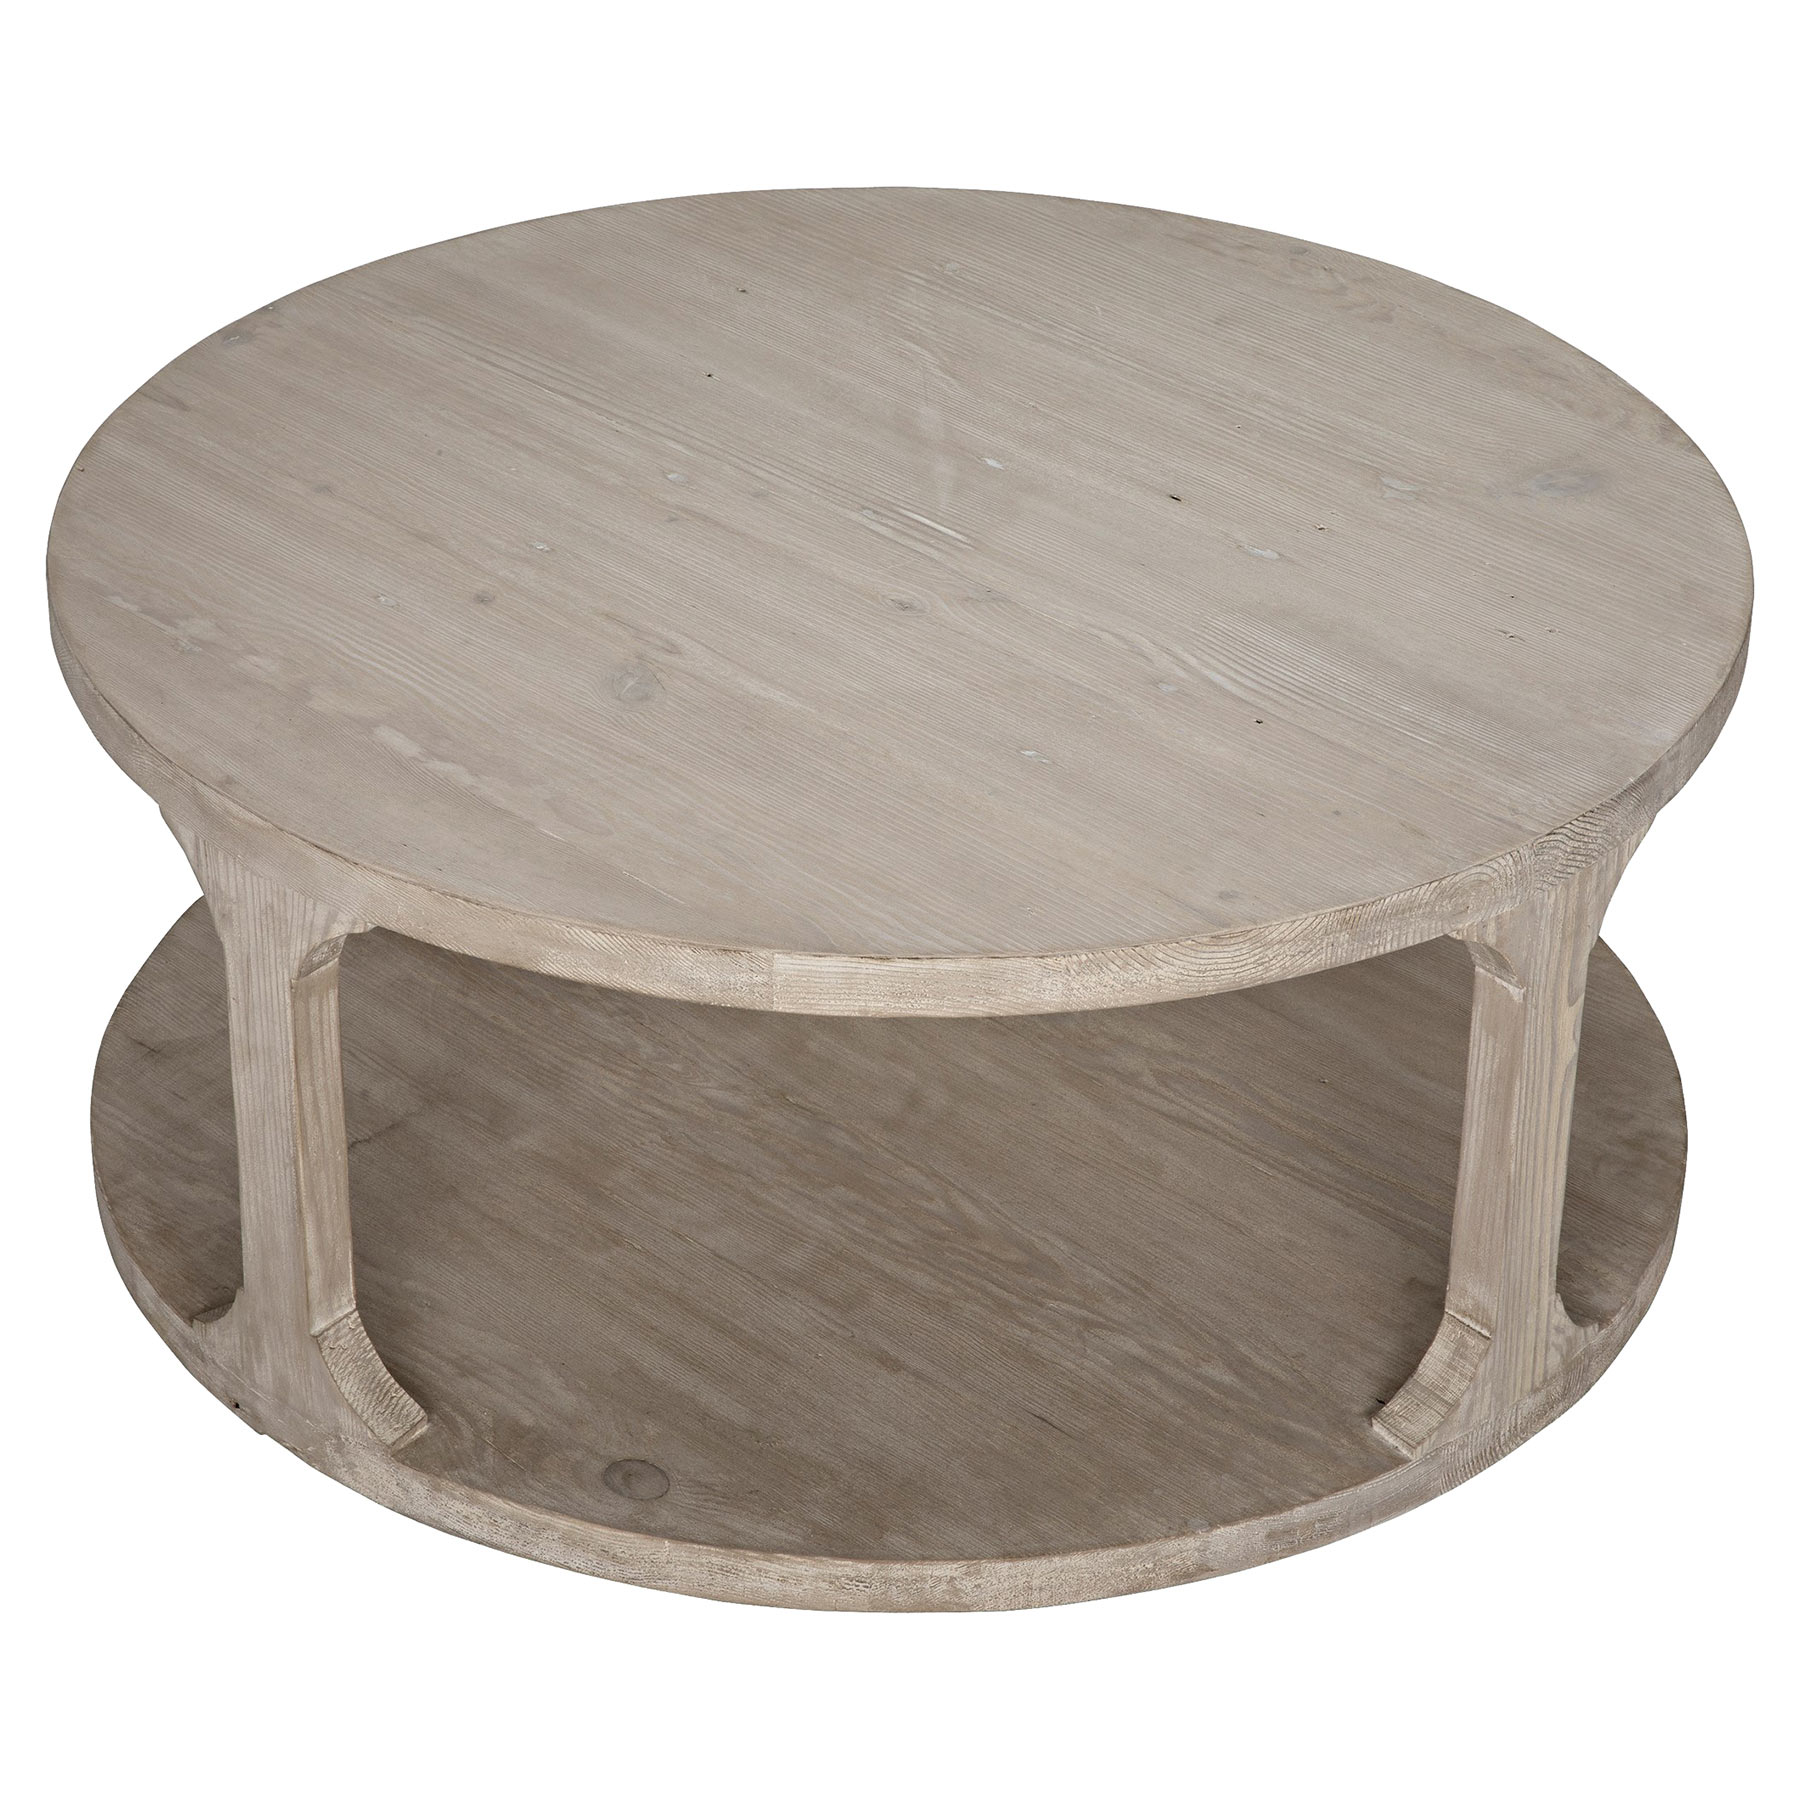 Andre Coastal Beach Grey Washed Reclaimed Wood Round Coffee Table - Small